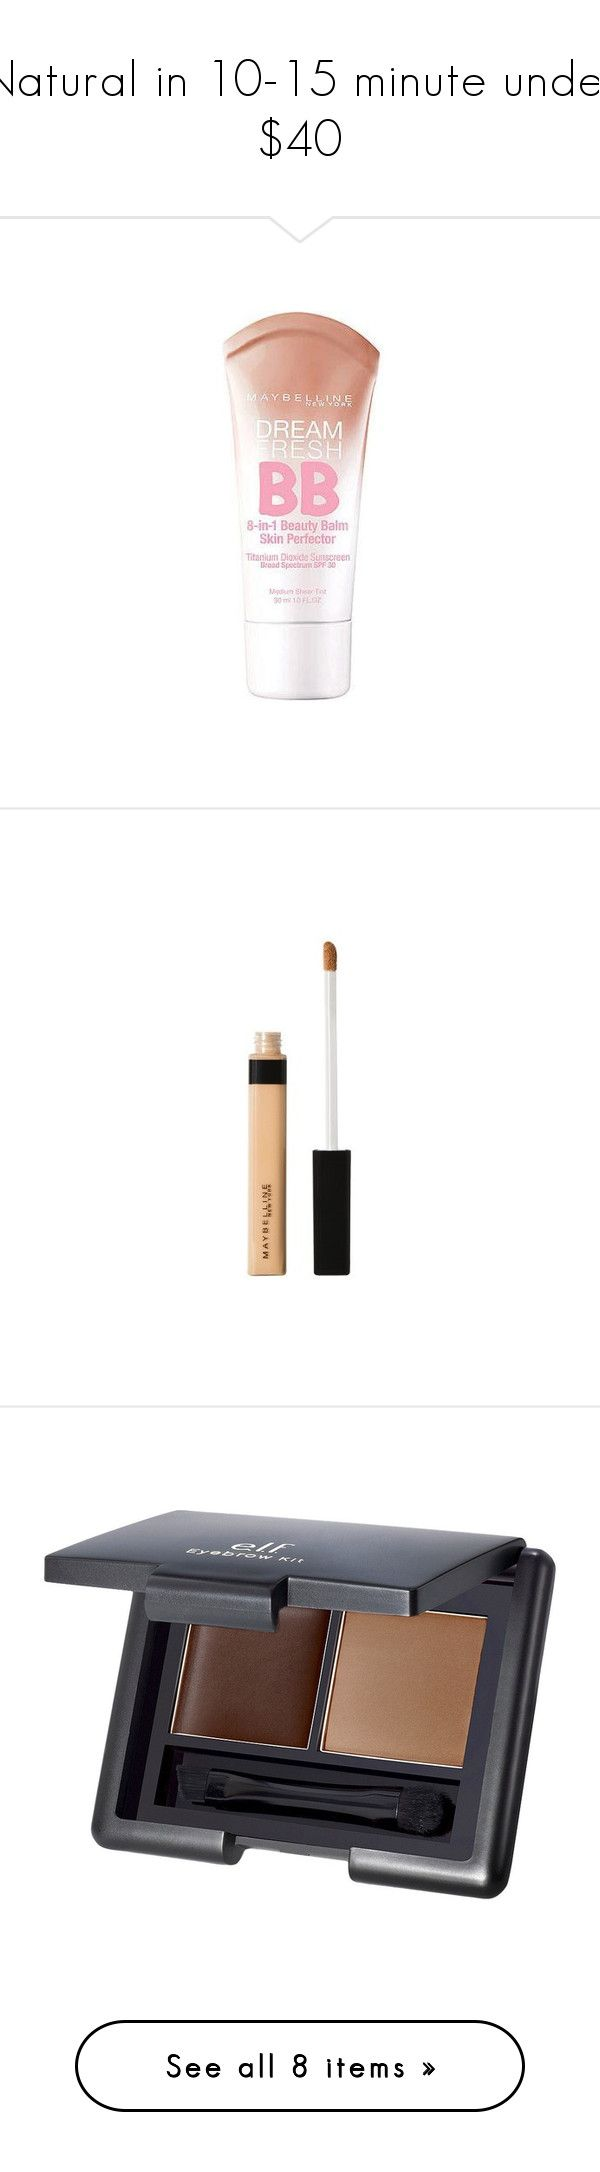 """Natural in 10-15 minute under $40"" by samleghost ❤ liked on Polyvore featuring beauty products, makeup, face makeup, tinted moisturizer, maybelline face makeup, maybelline, maybelline tinted moisturizer, concealer, maybelline concealer and oil free concealer"